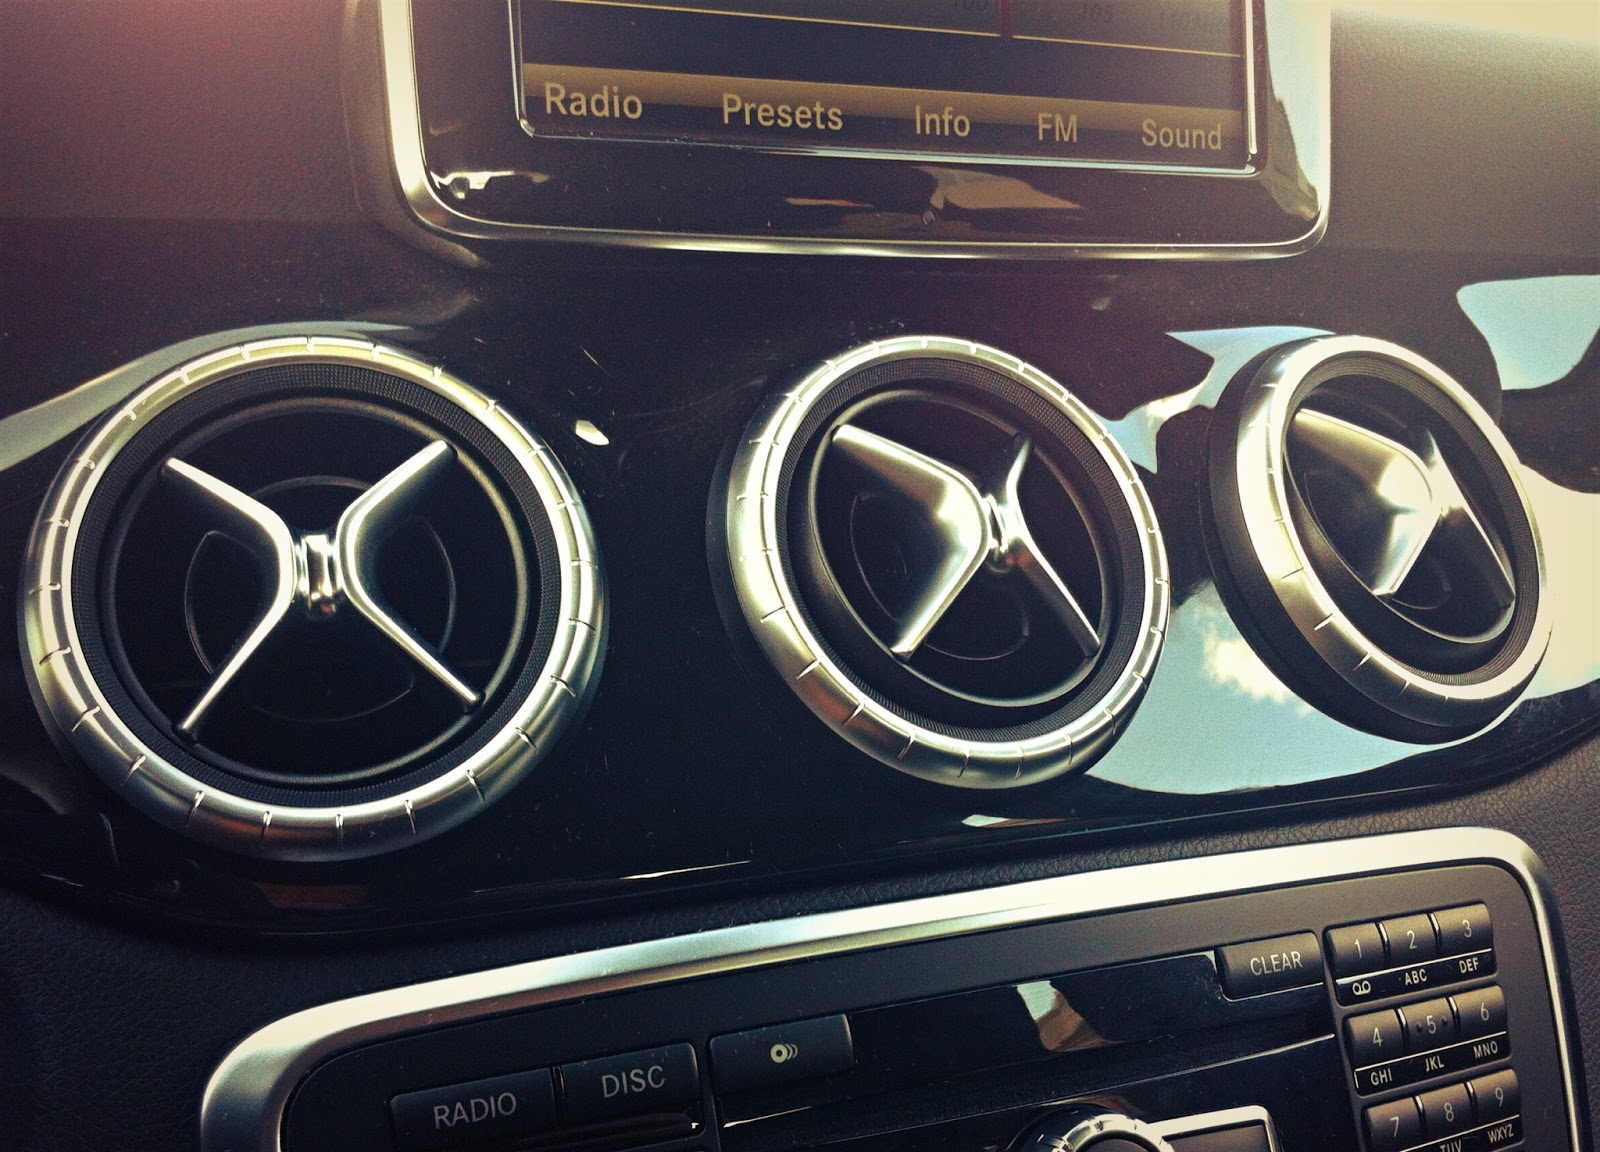 2014 Mercedes-Benz CLA250 vents